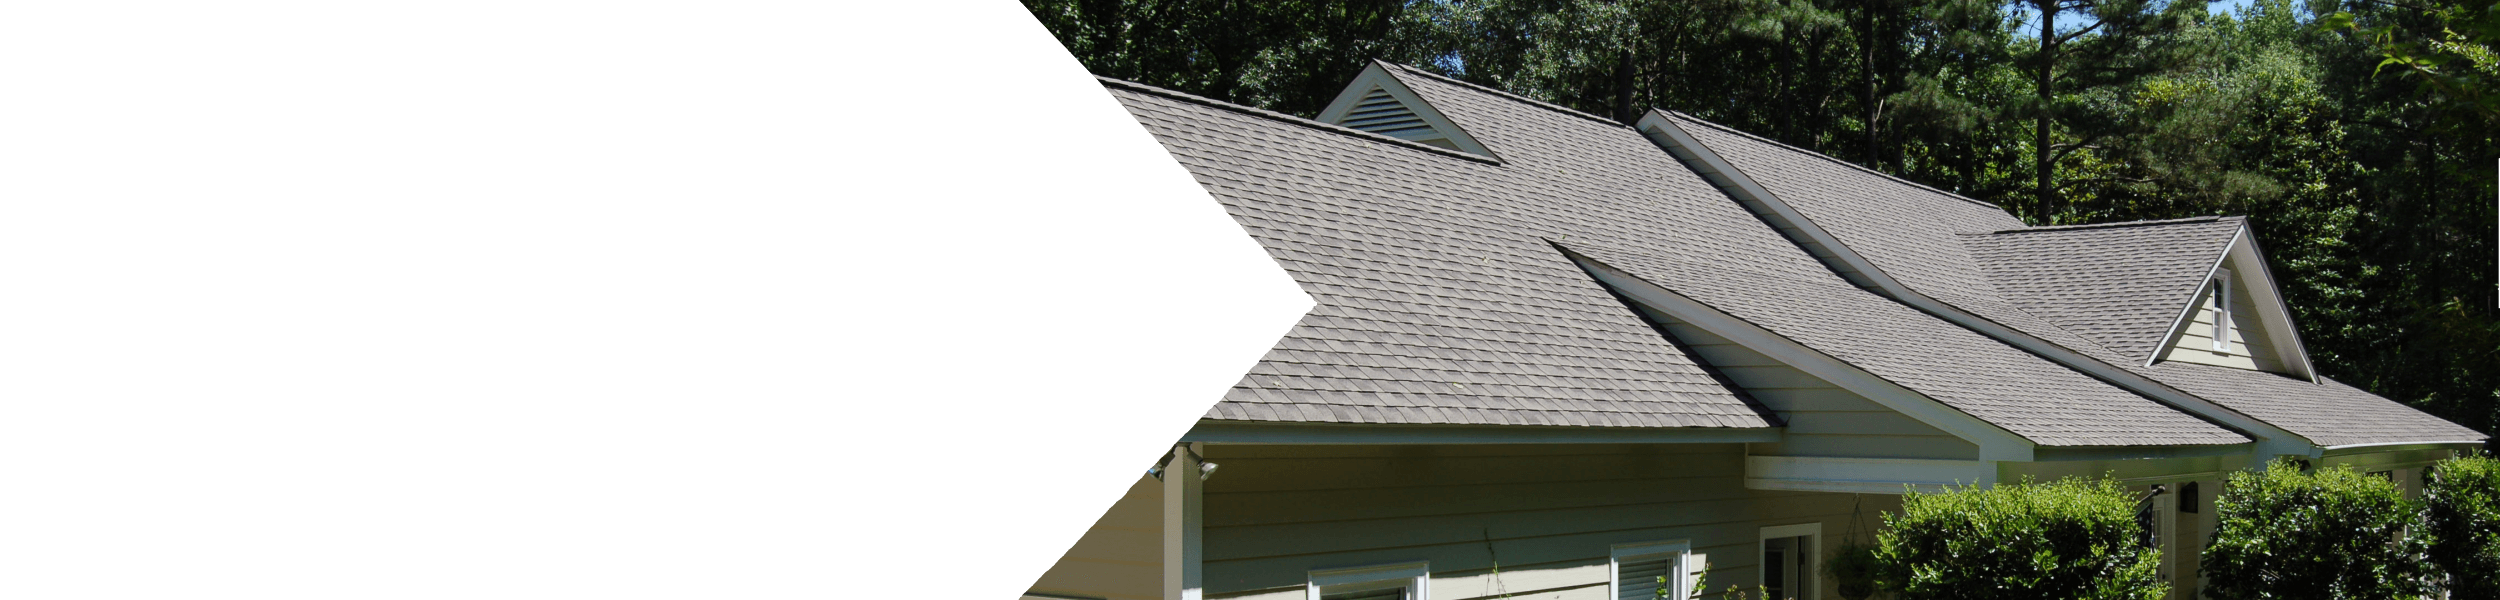 Mid State Construction Fresno Roofing Contractor